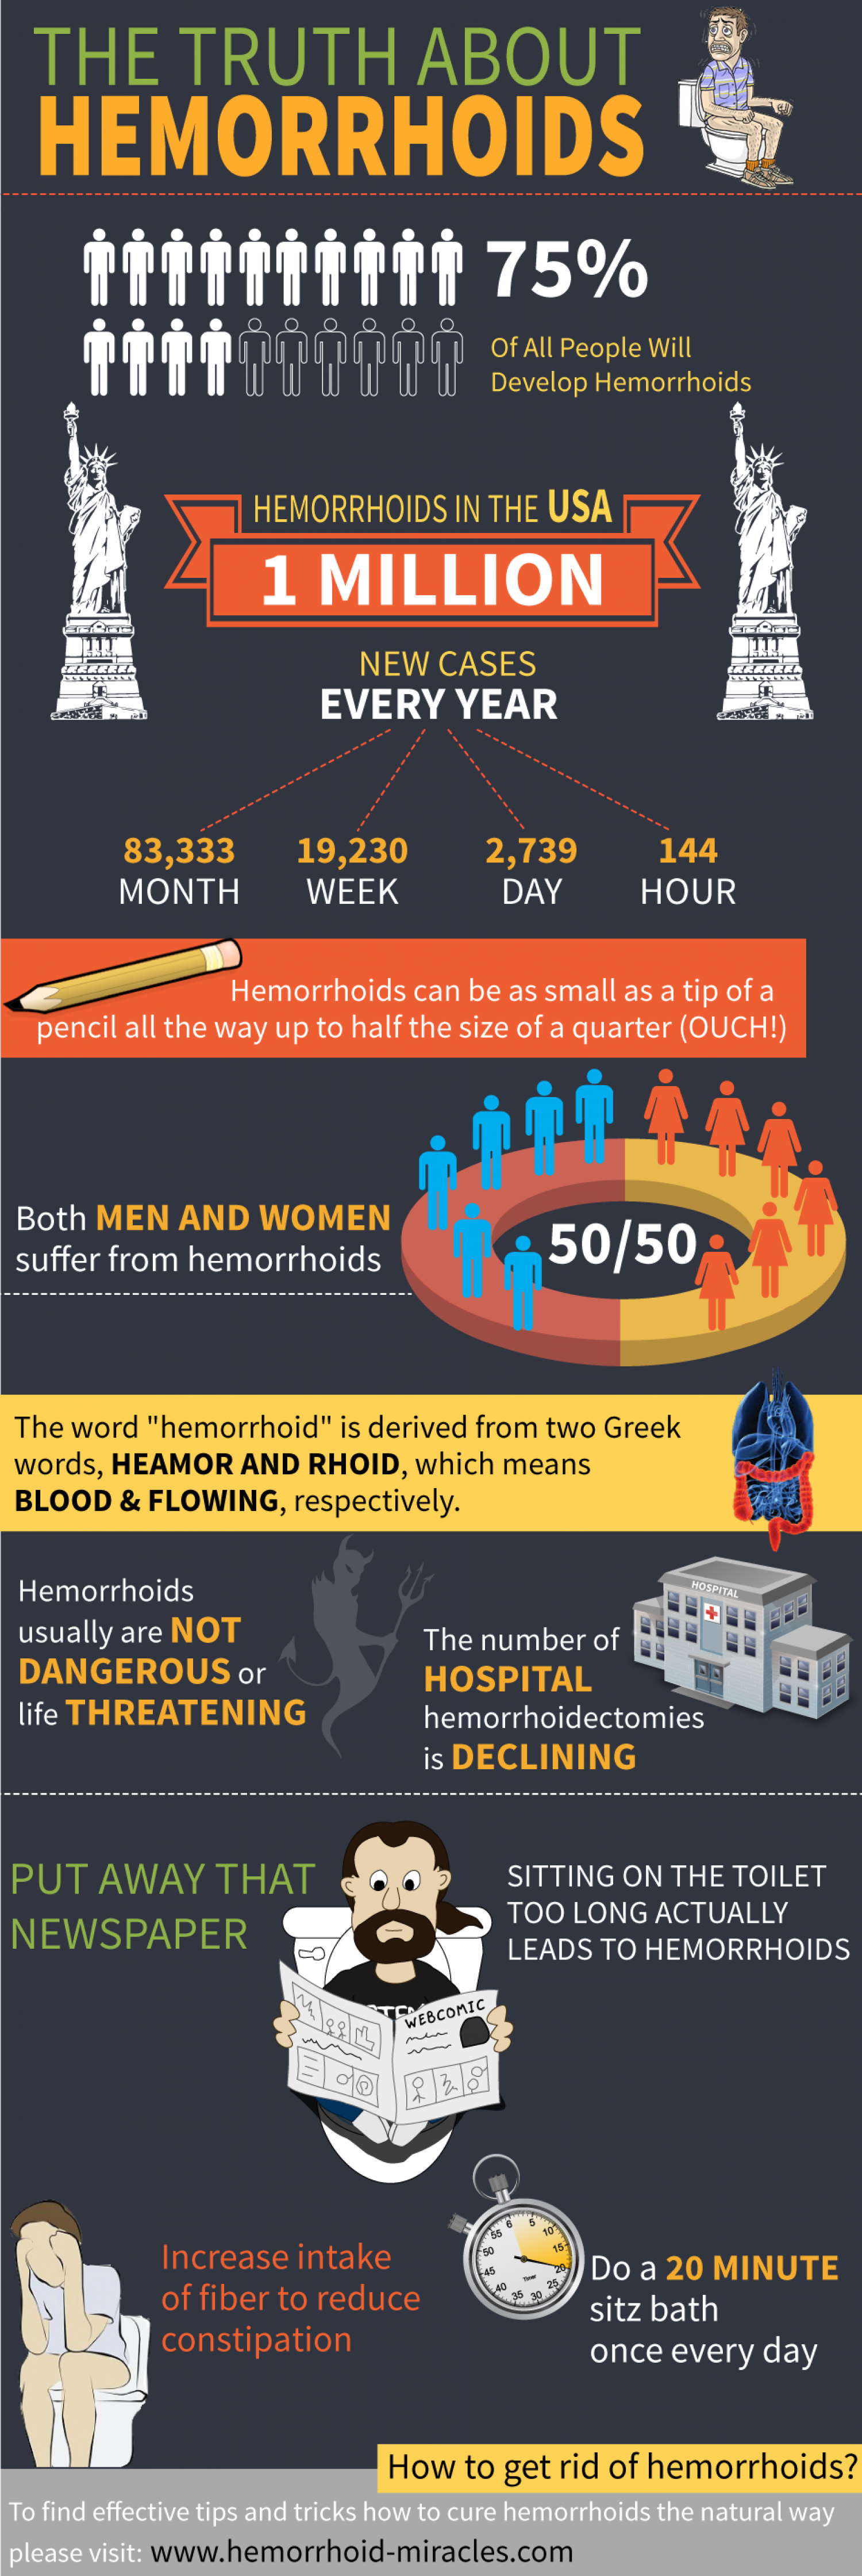 The Truth About Hemorrhoids Infographic